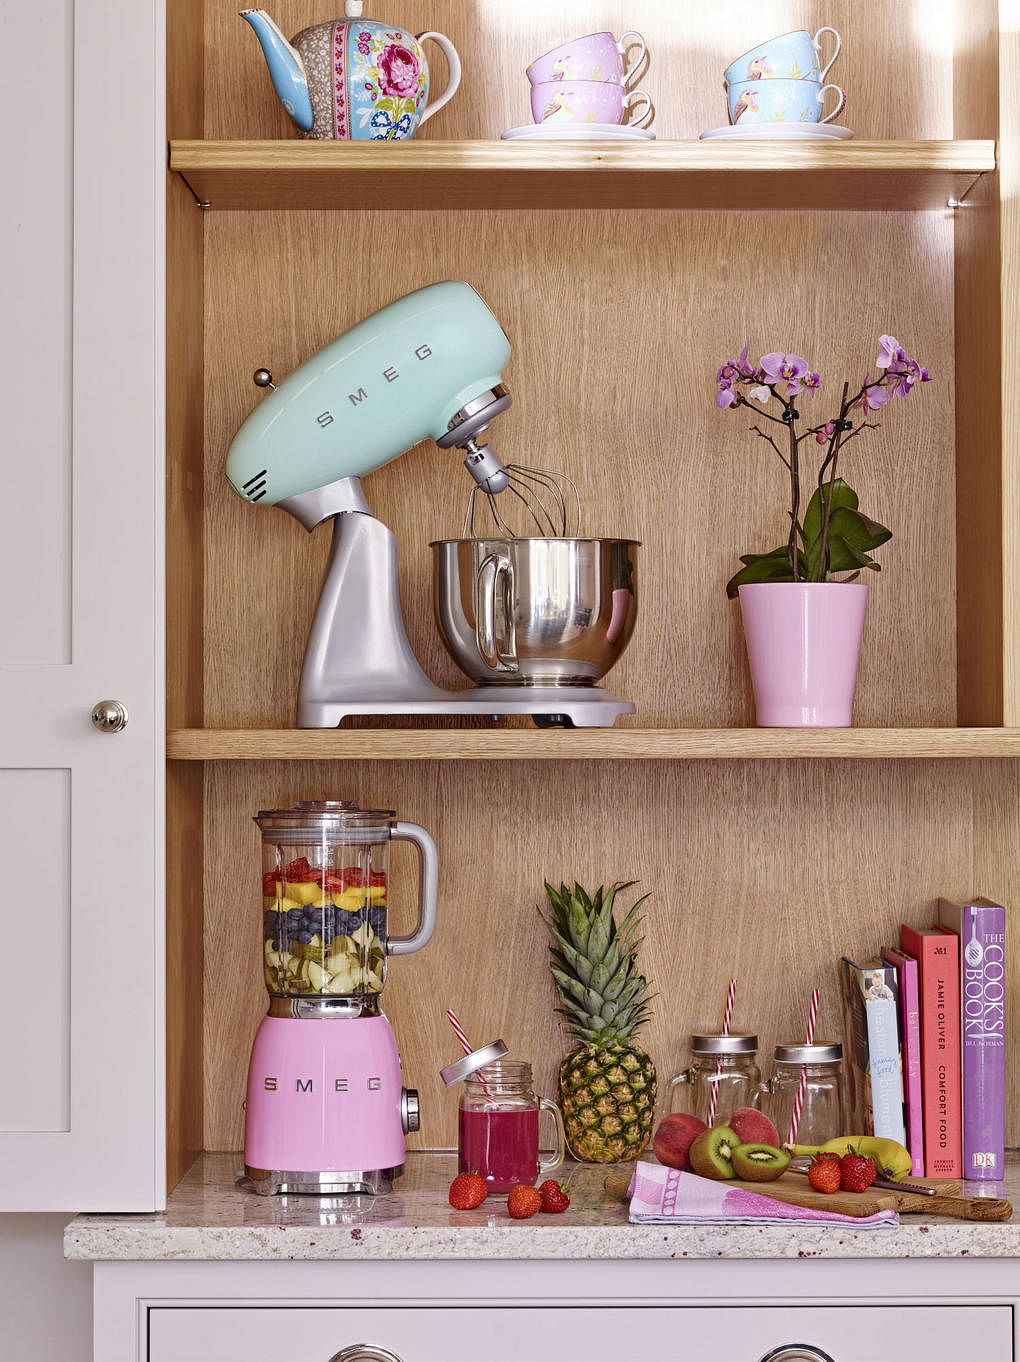 If You Love The Smeg Fridge You Ll Want These New Smeg